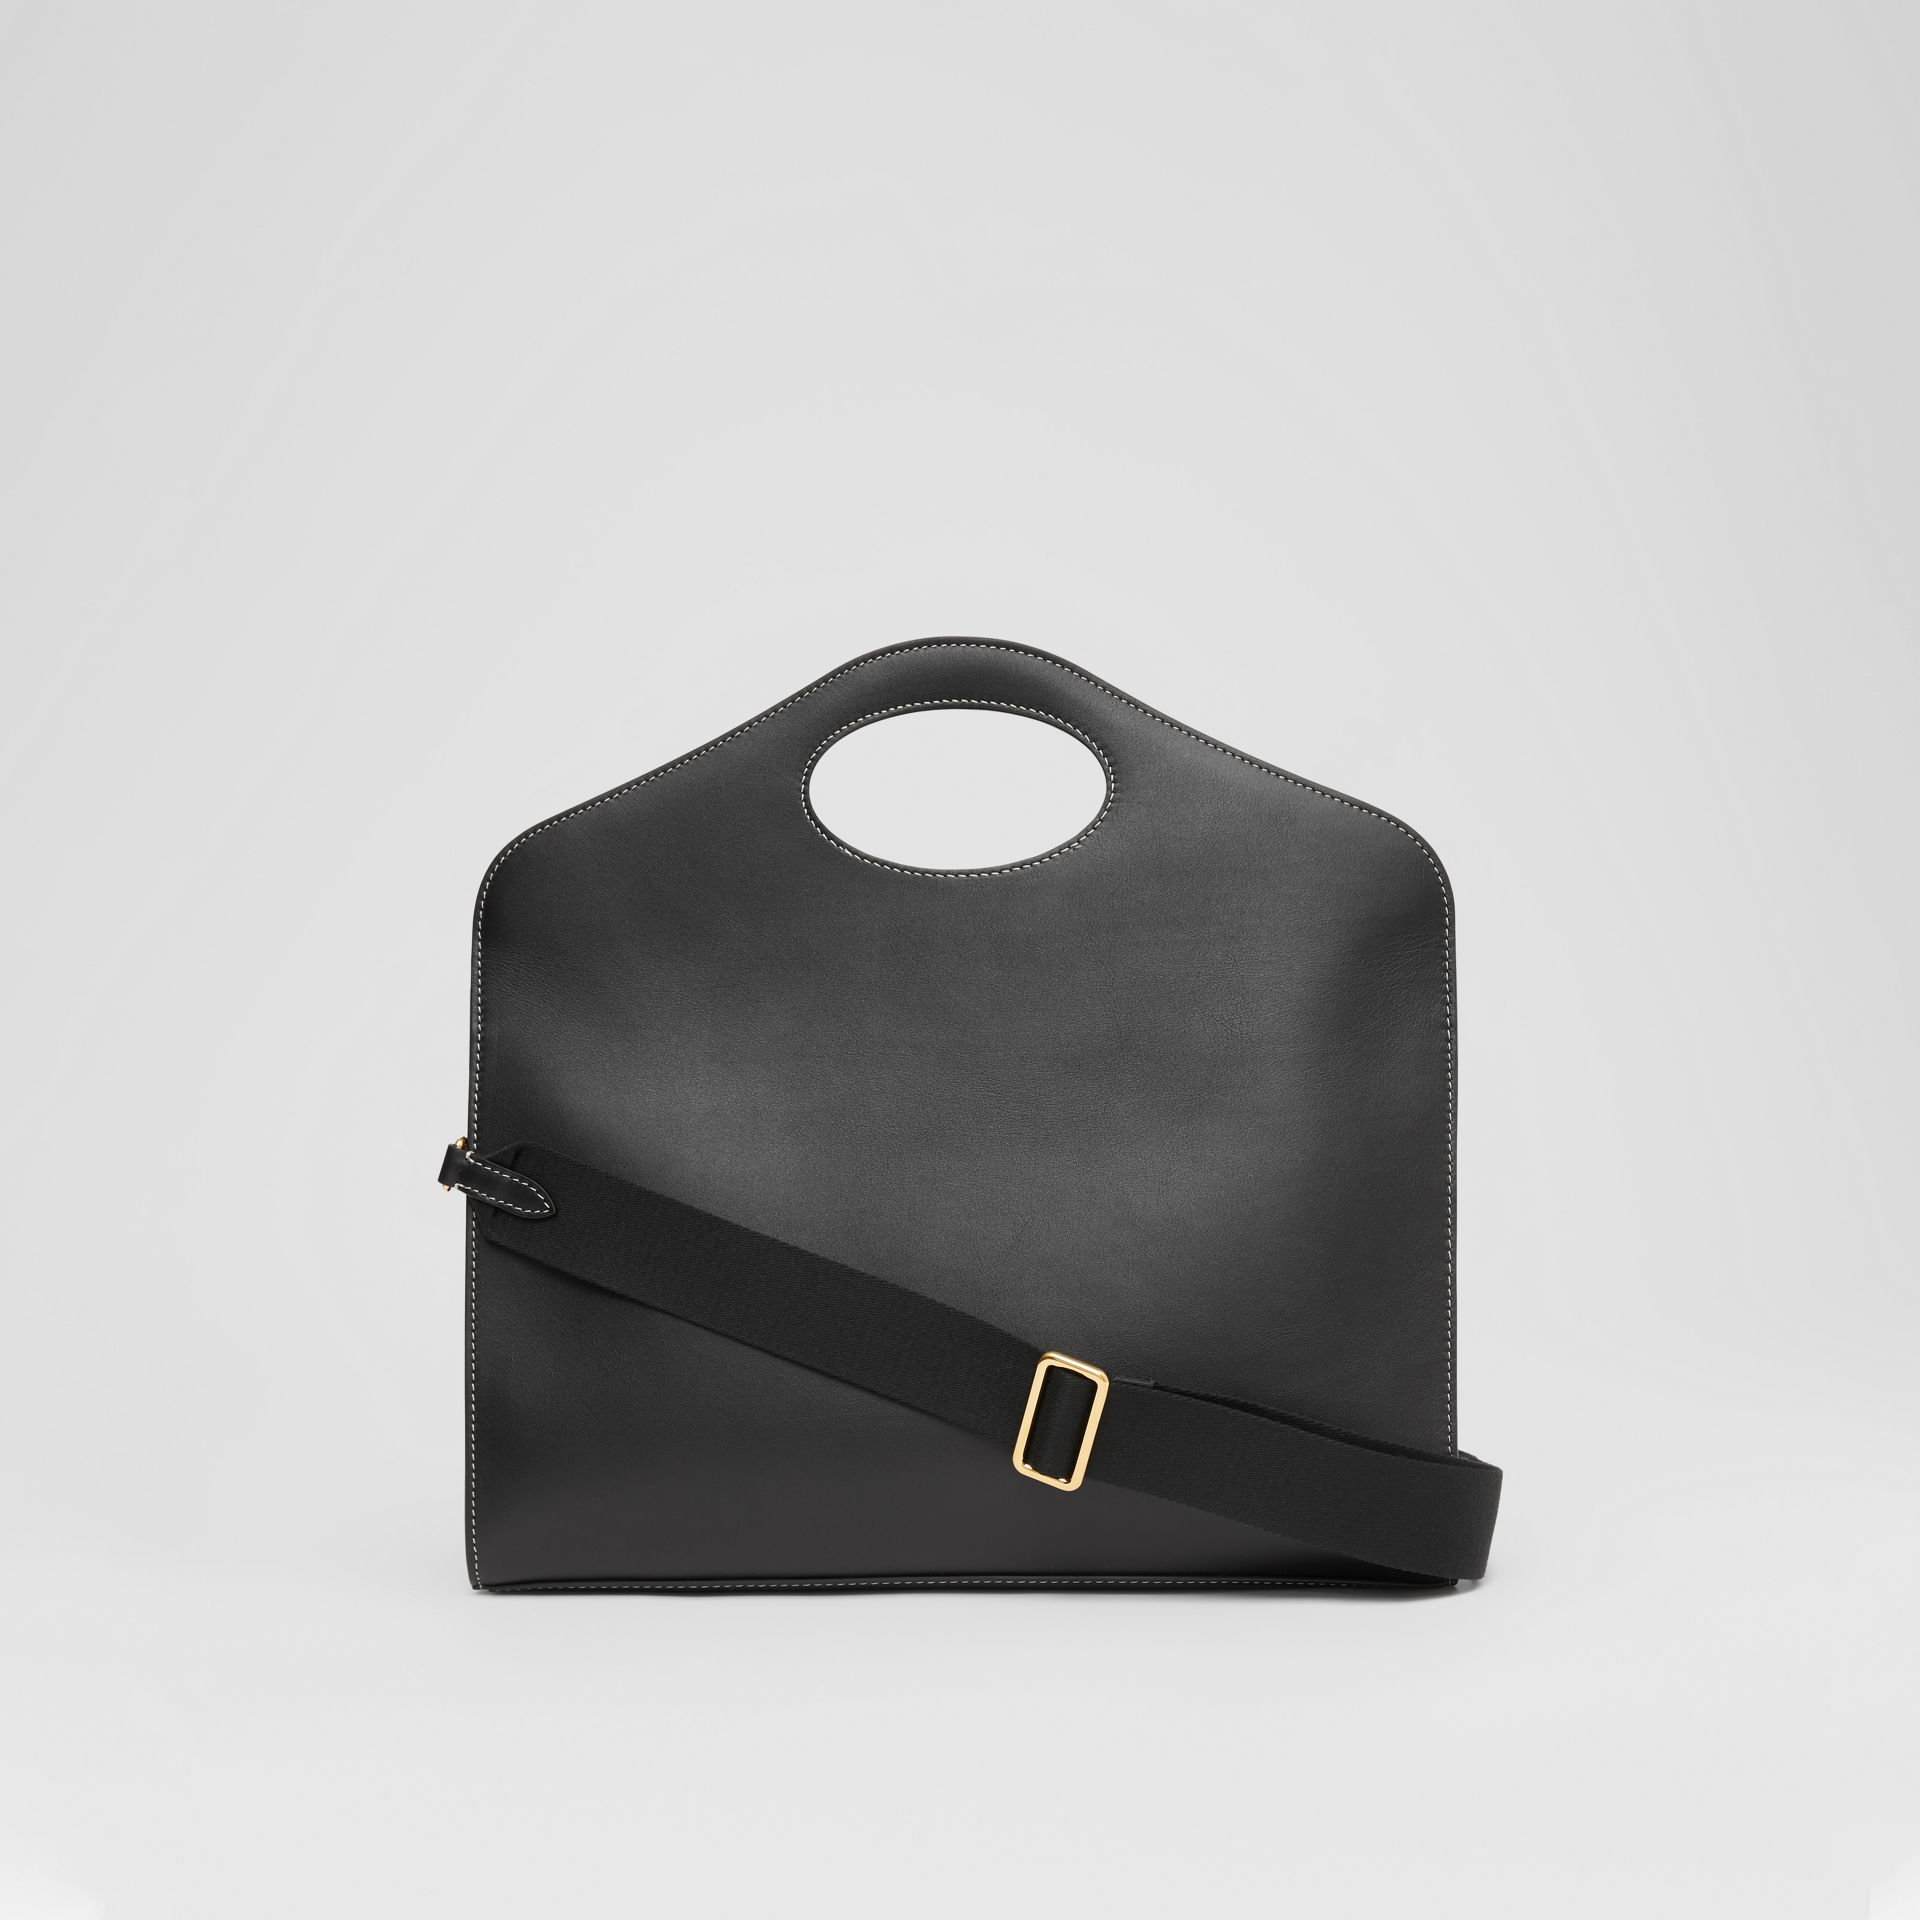 Medium Topstitched Leather Pocket Tote in Black - Women | Burberry - gallery image 7